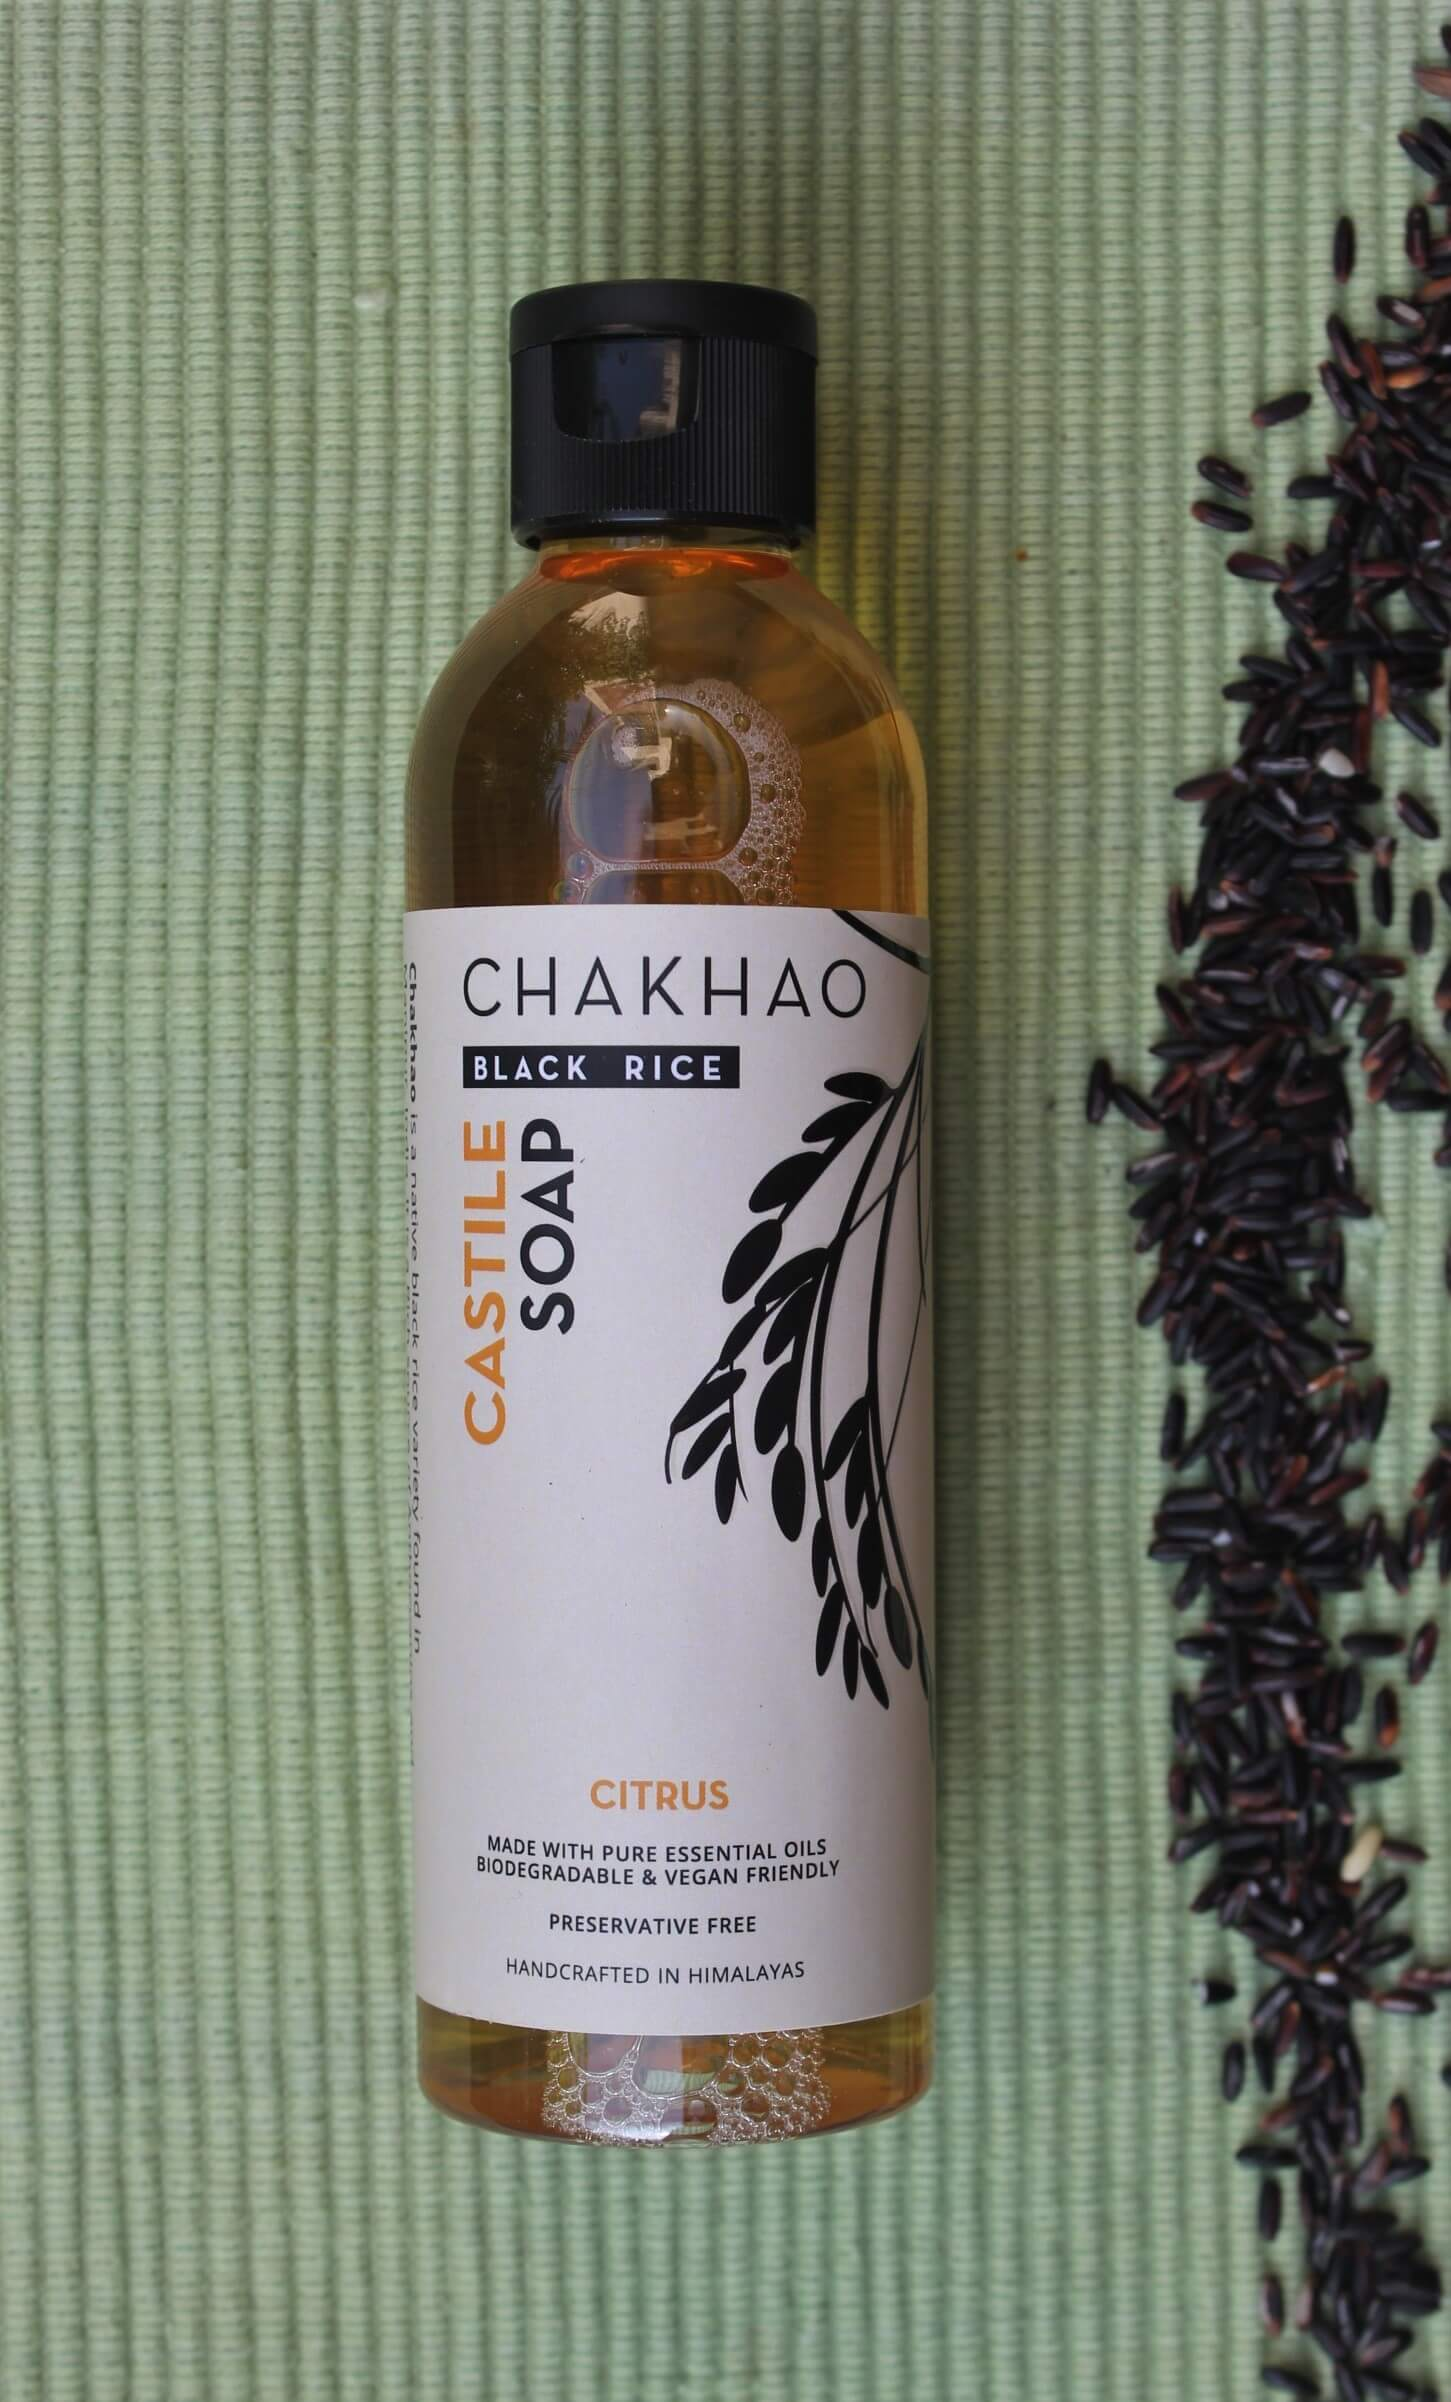 Chakhao-Black-Rice-Citrus-Liquid-Castile-Soap-bottle